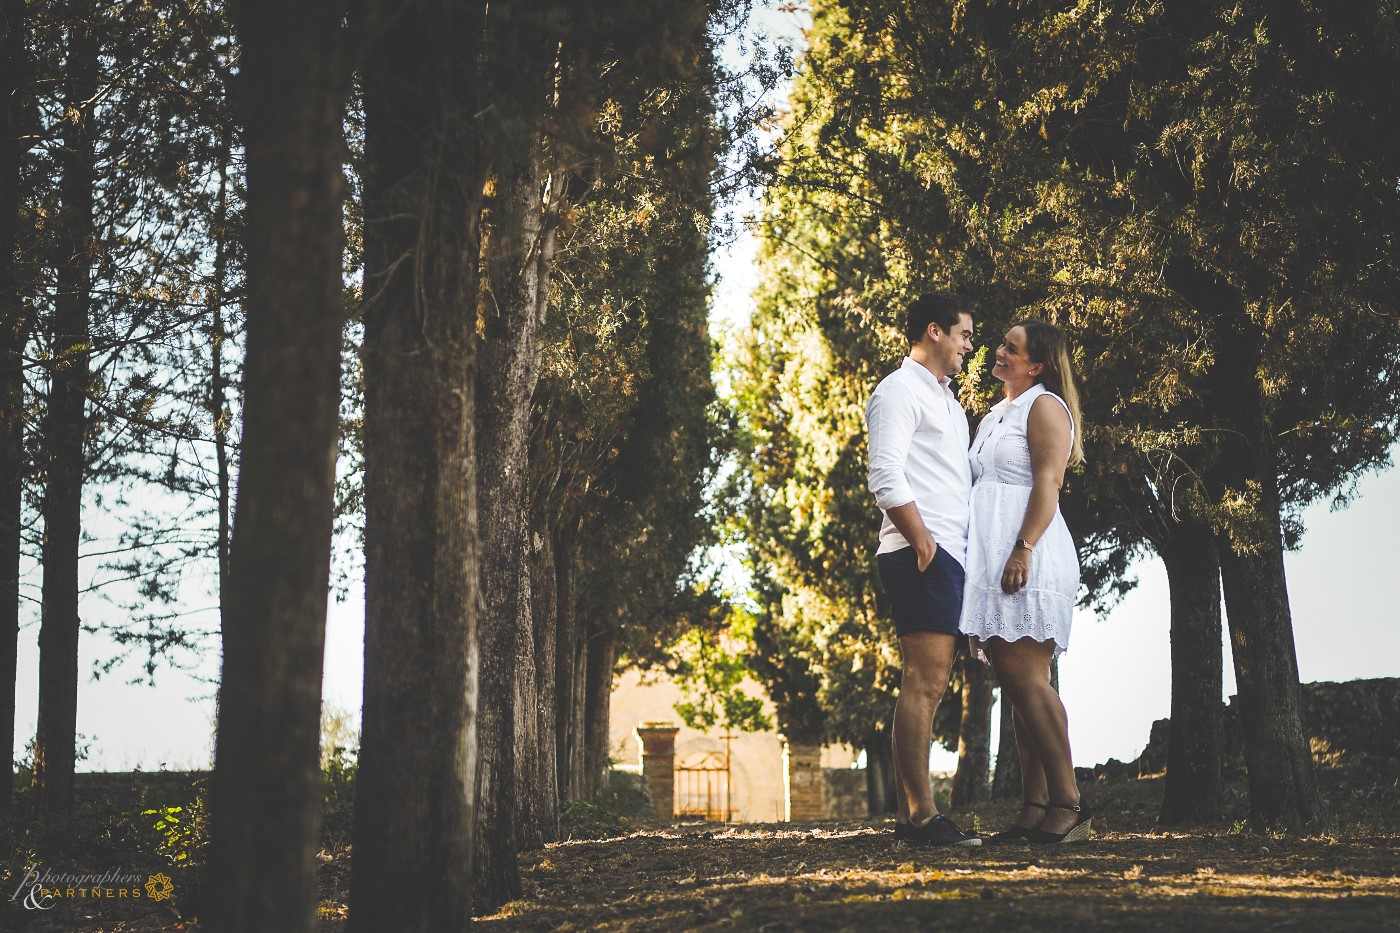 Romantic moment in the cypresses avenue